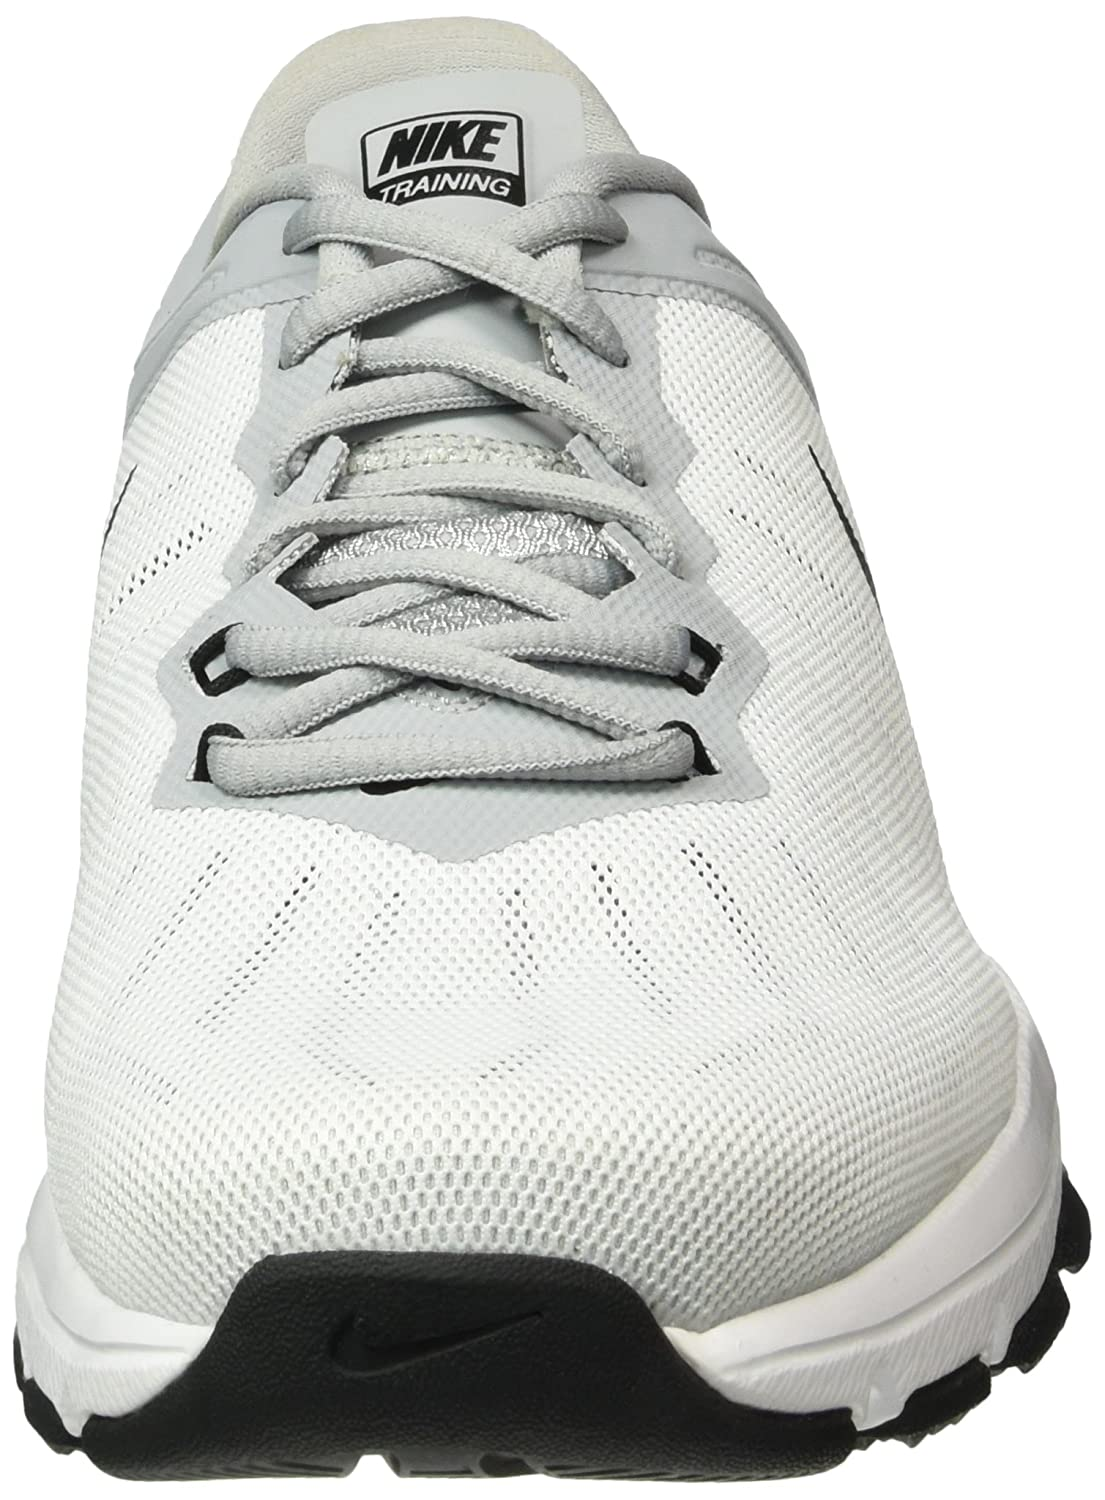 super popular e04a1 c7008 Zapatillas de entrenamiento Nike AIR Max Full Ride TR para hombre Blanco